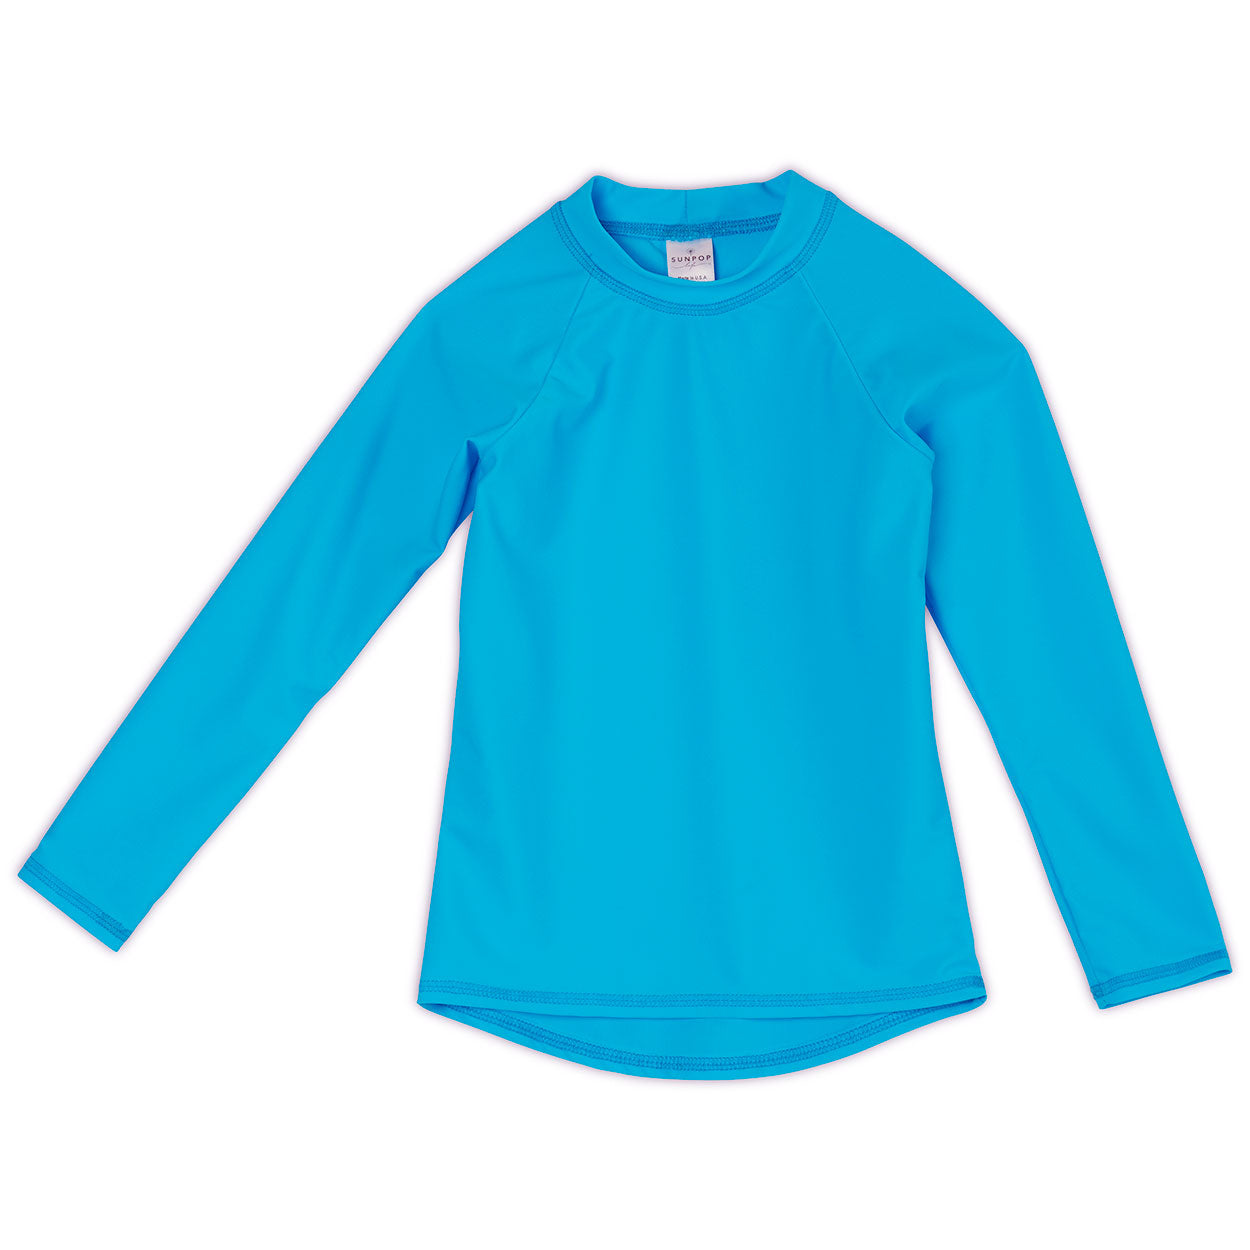 kids long sleeve tops